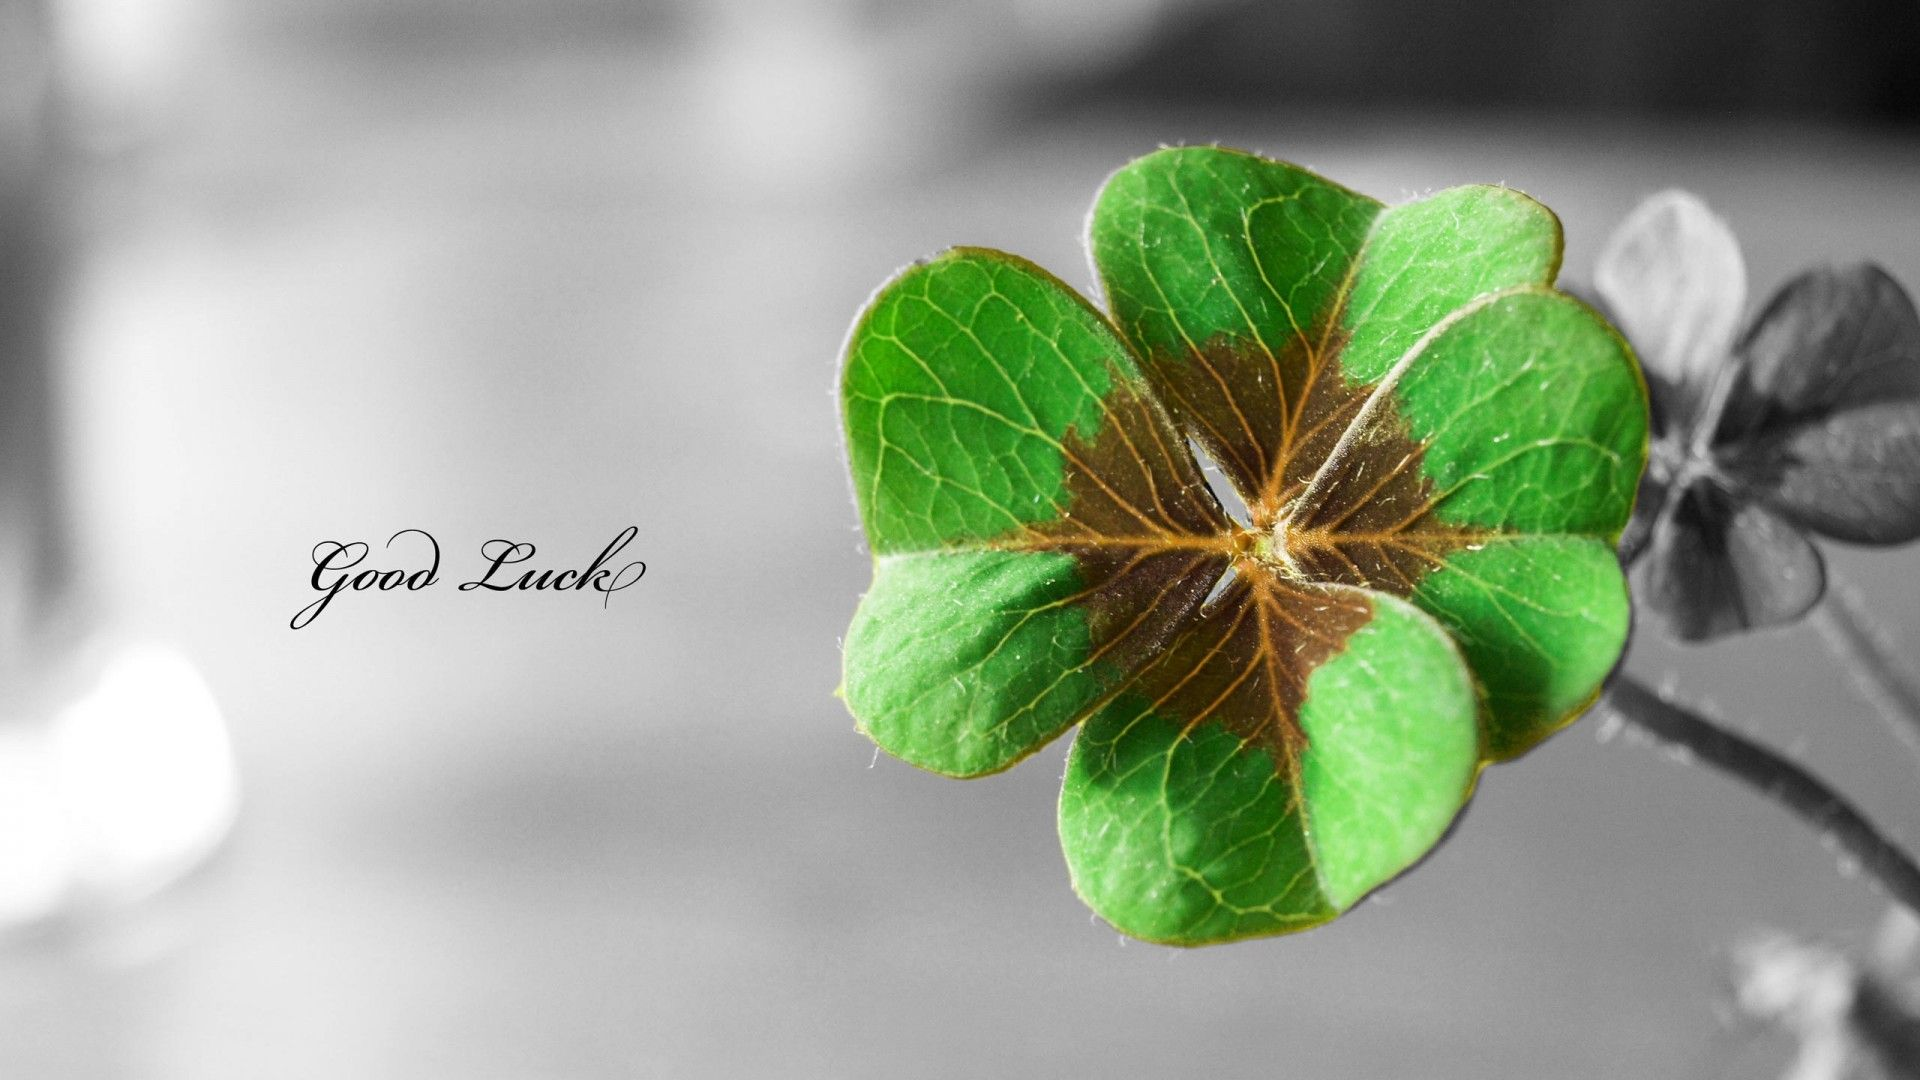 Good Luck Wallpaper HD